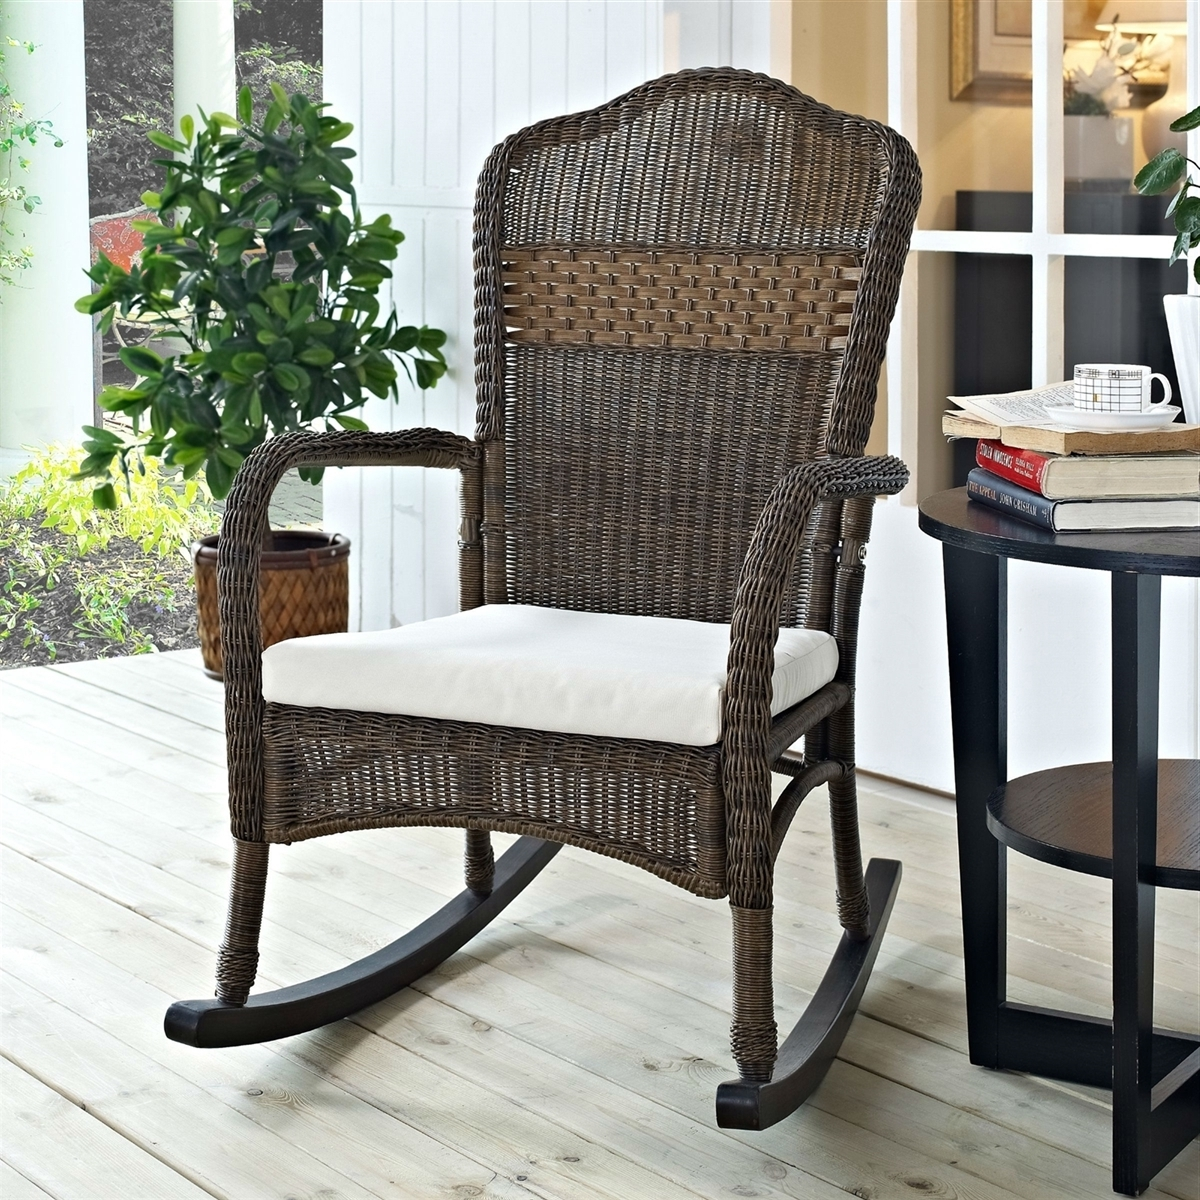 Widely Used Outdoor Patio Rocking Chairs Inside Wicker Patio Furniture Rocking Chair Mocha With Beige Cushion (View 10 of 20)